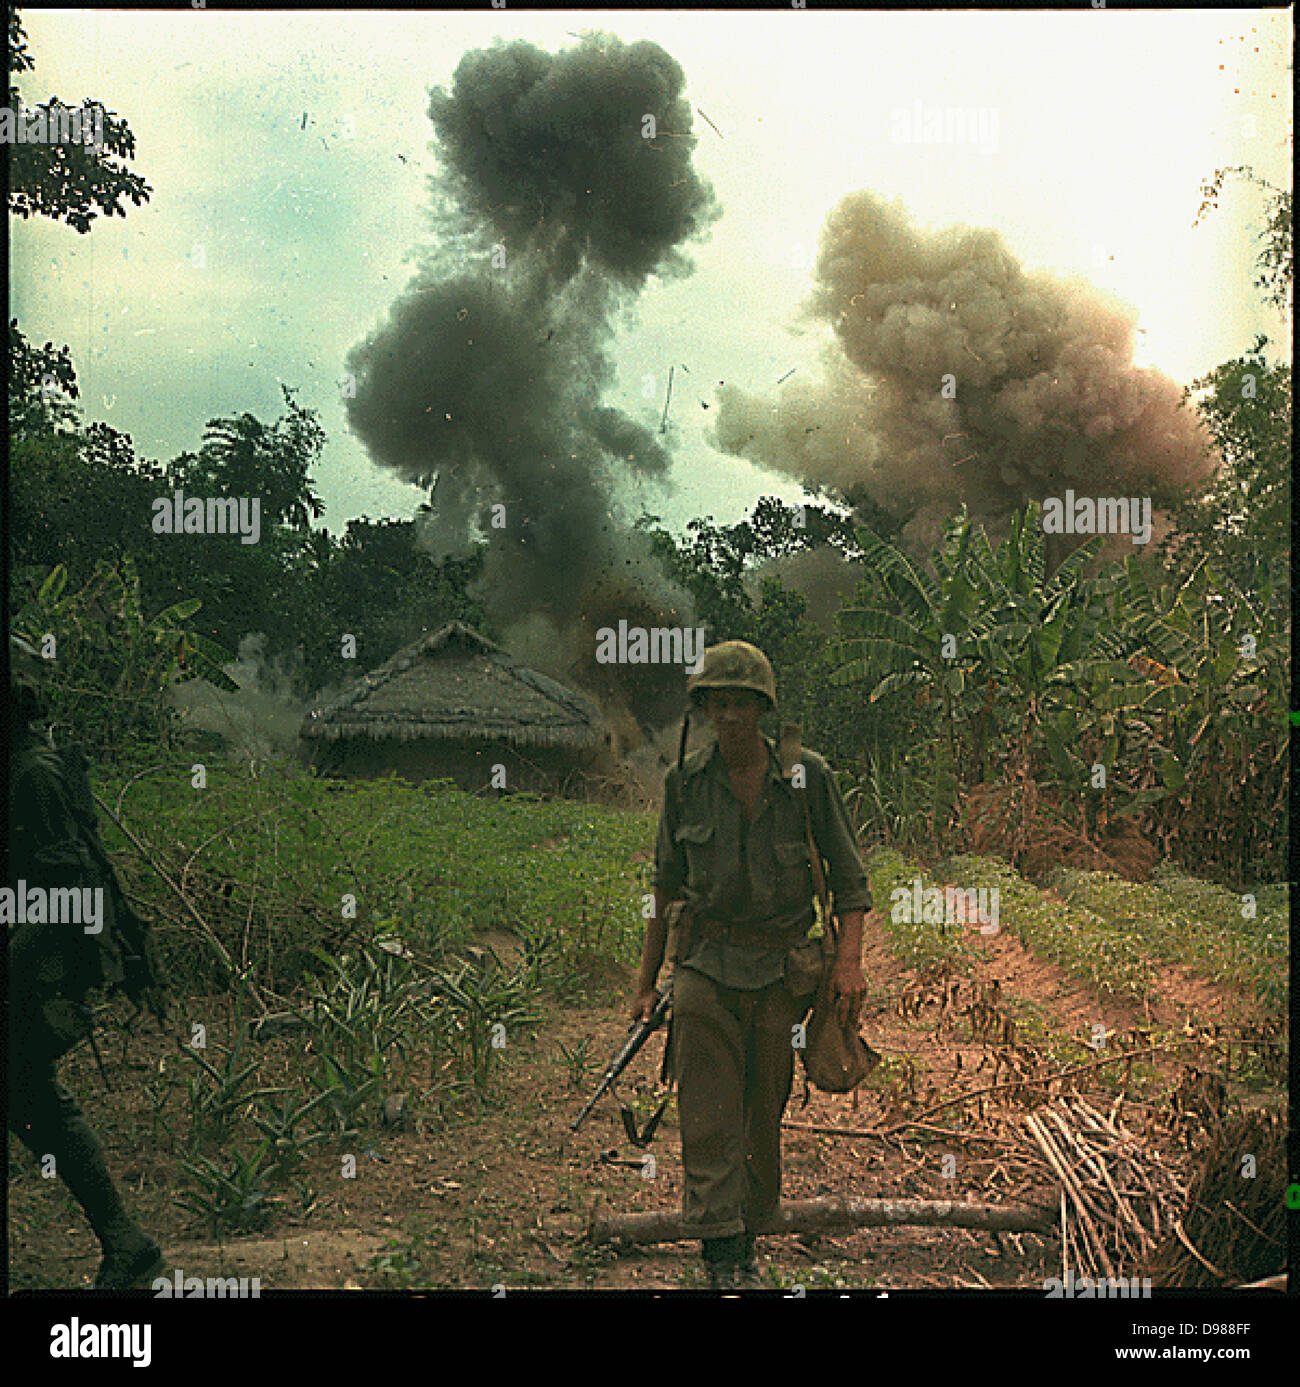 Operation Georgia: US Marines blow up bunkers and tunnels used by the Vietcong, 5 May 1966. NARA photograph. Stock Photo